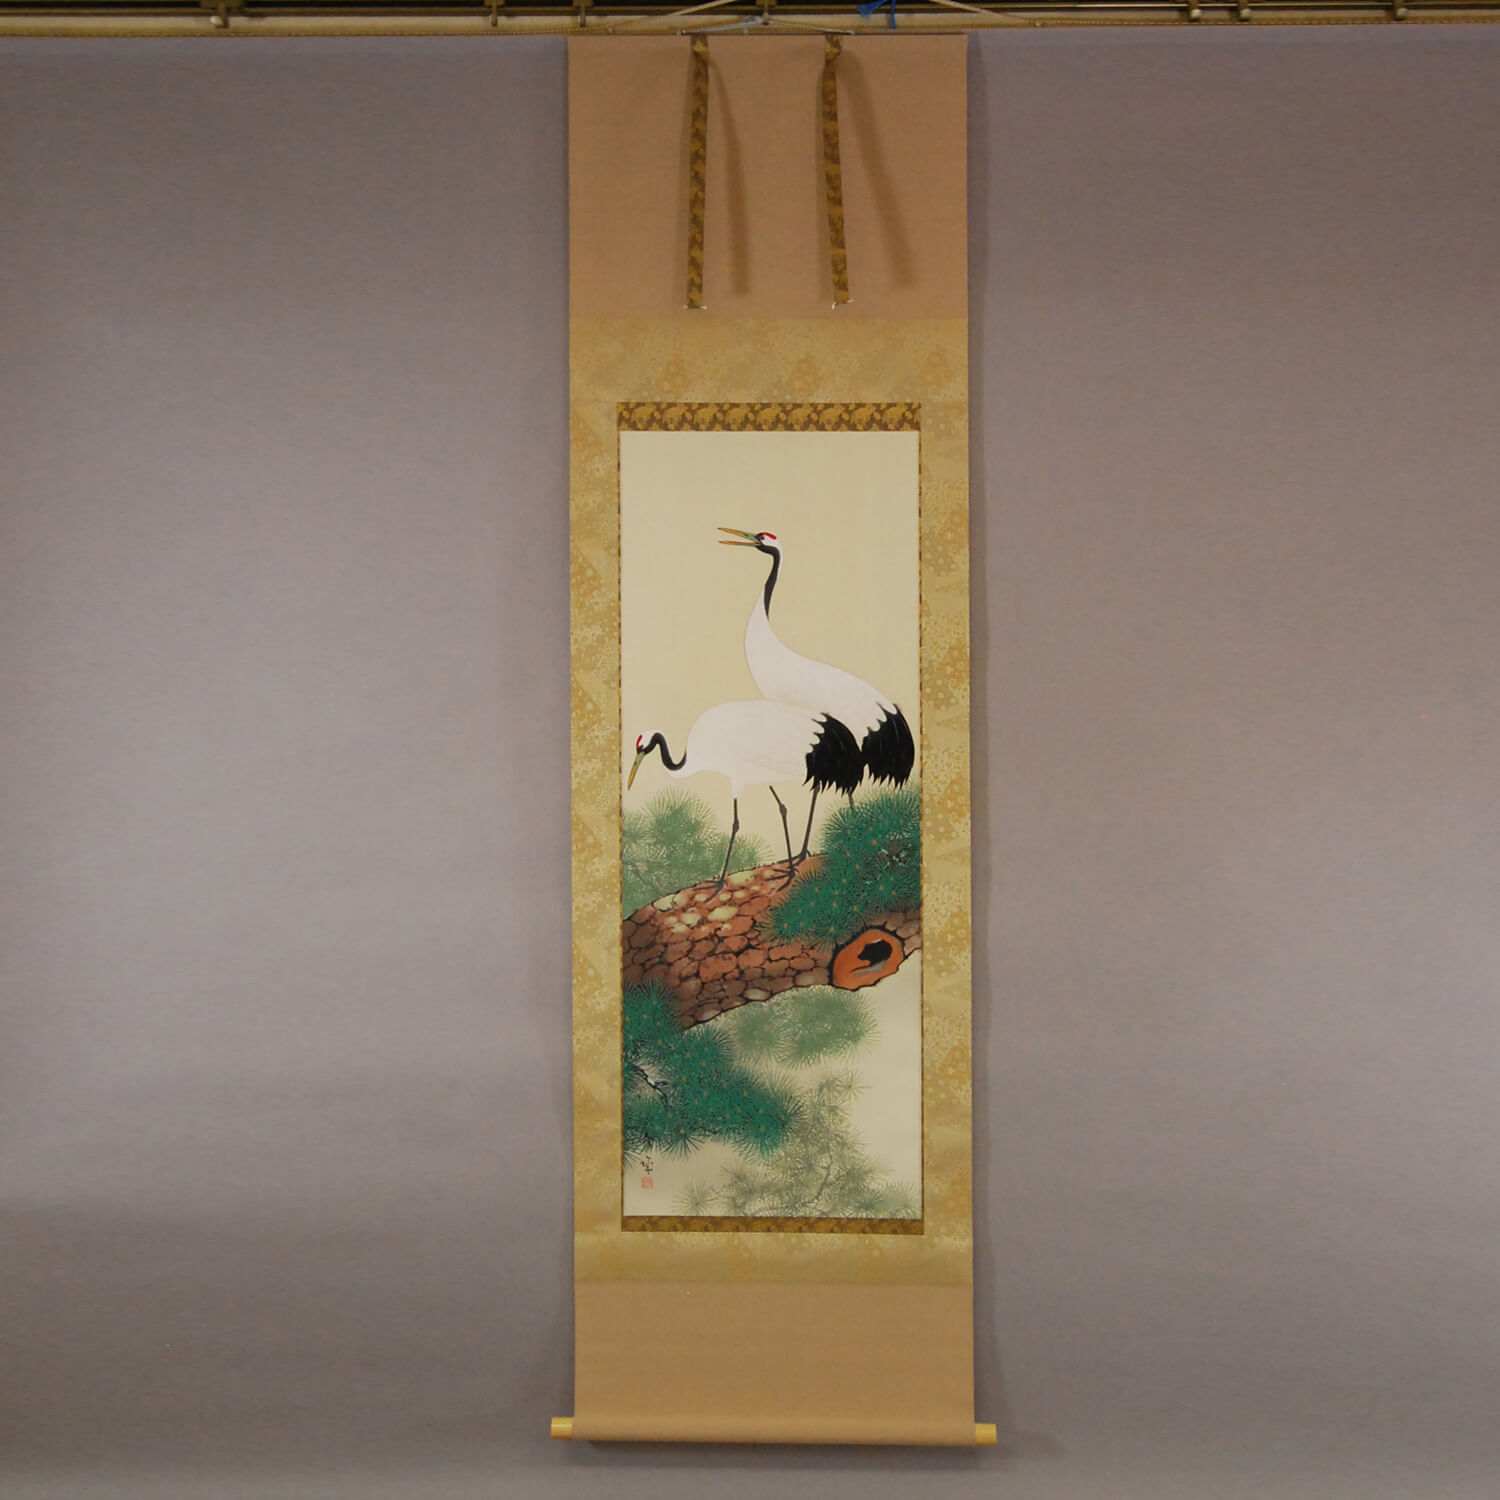 Cranes on the Trunk of a Pine Tree / Shuujou Inoue